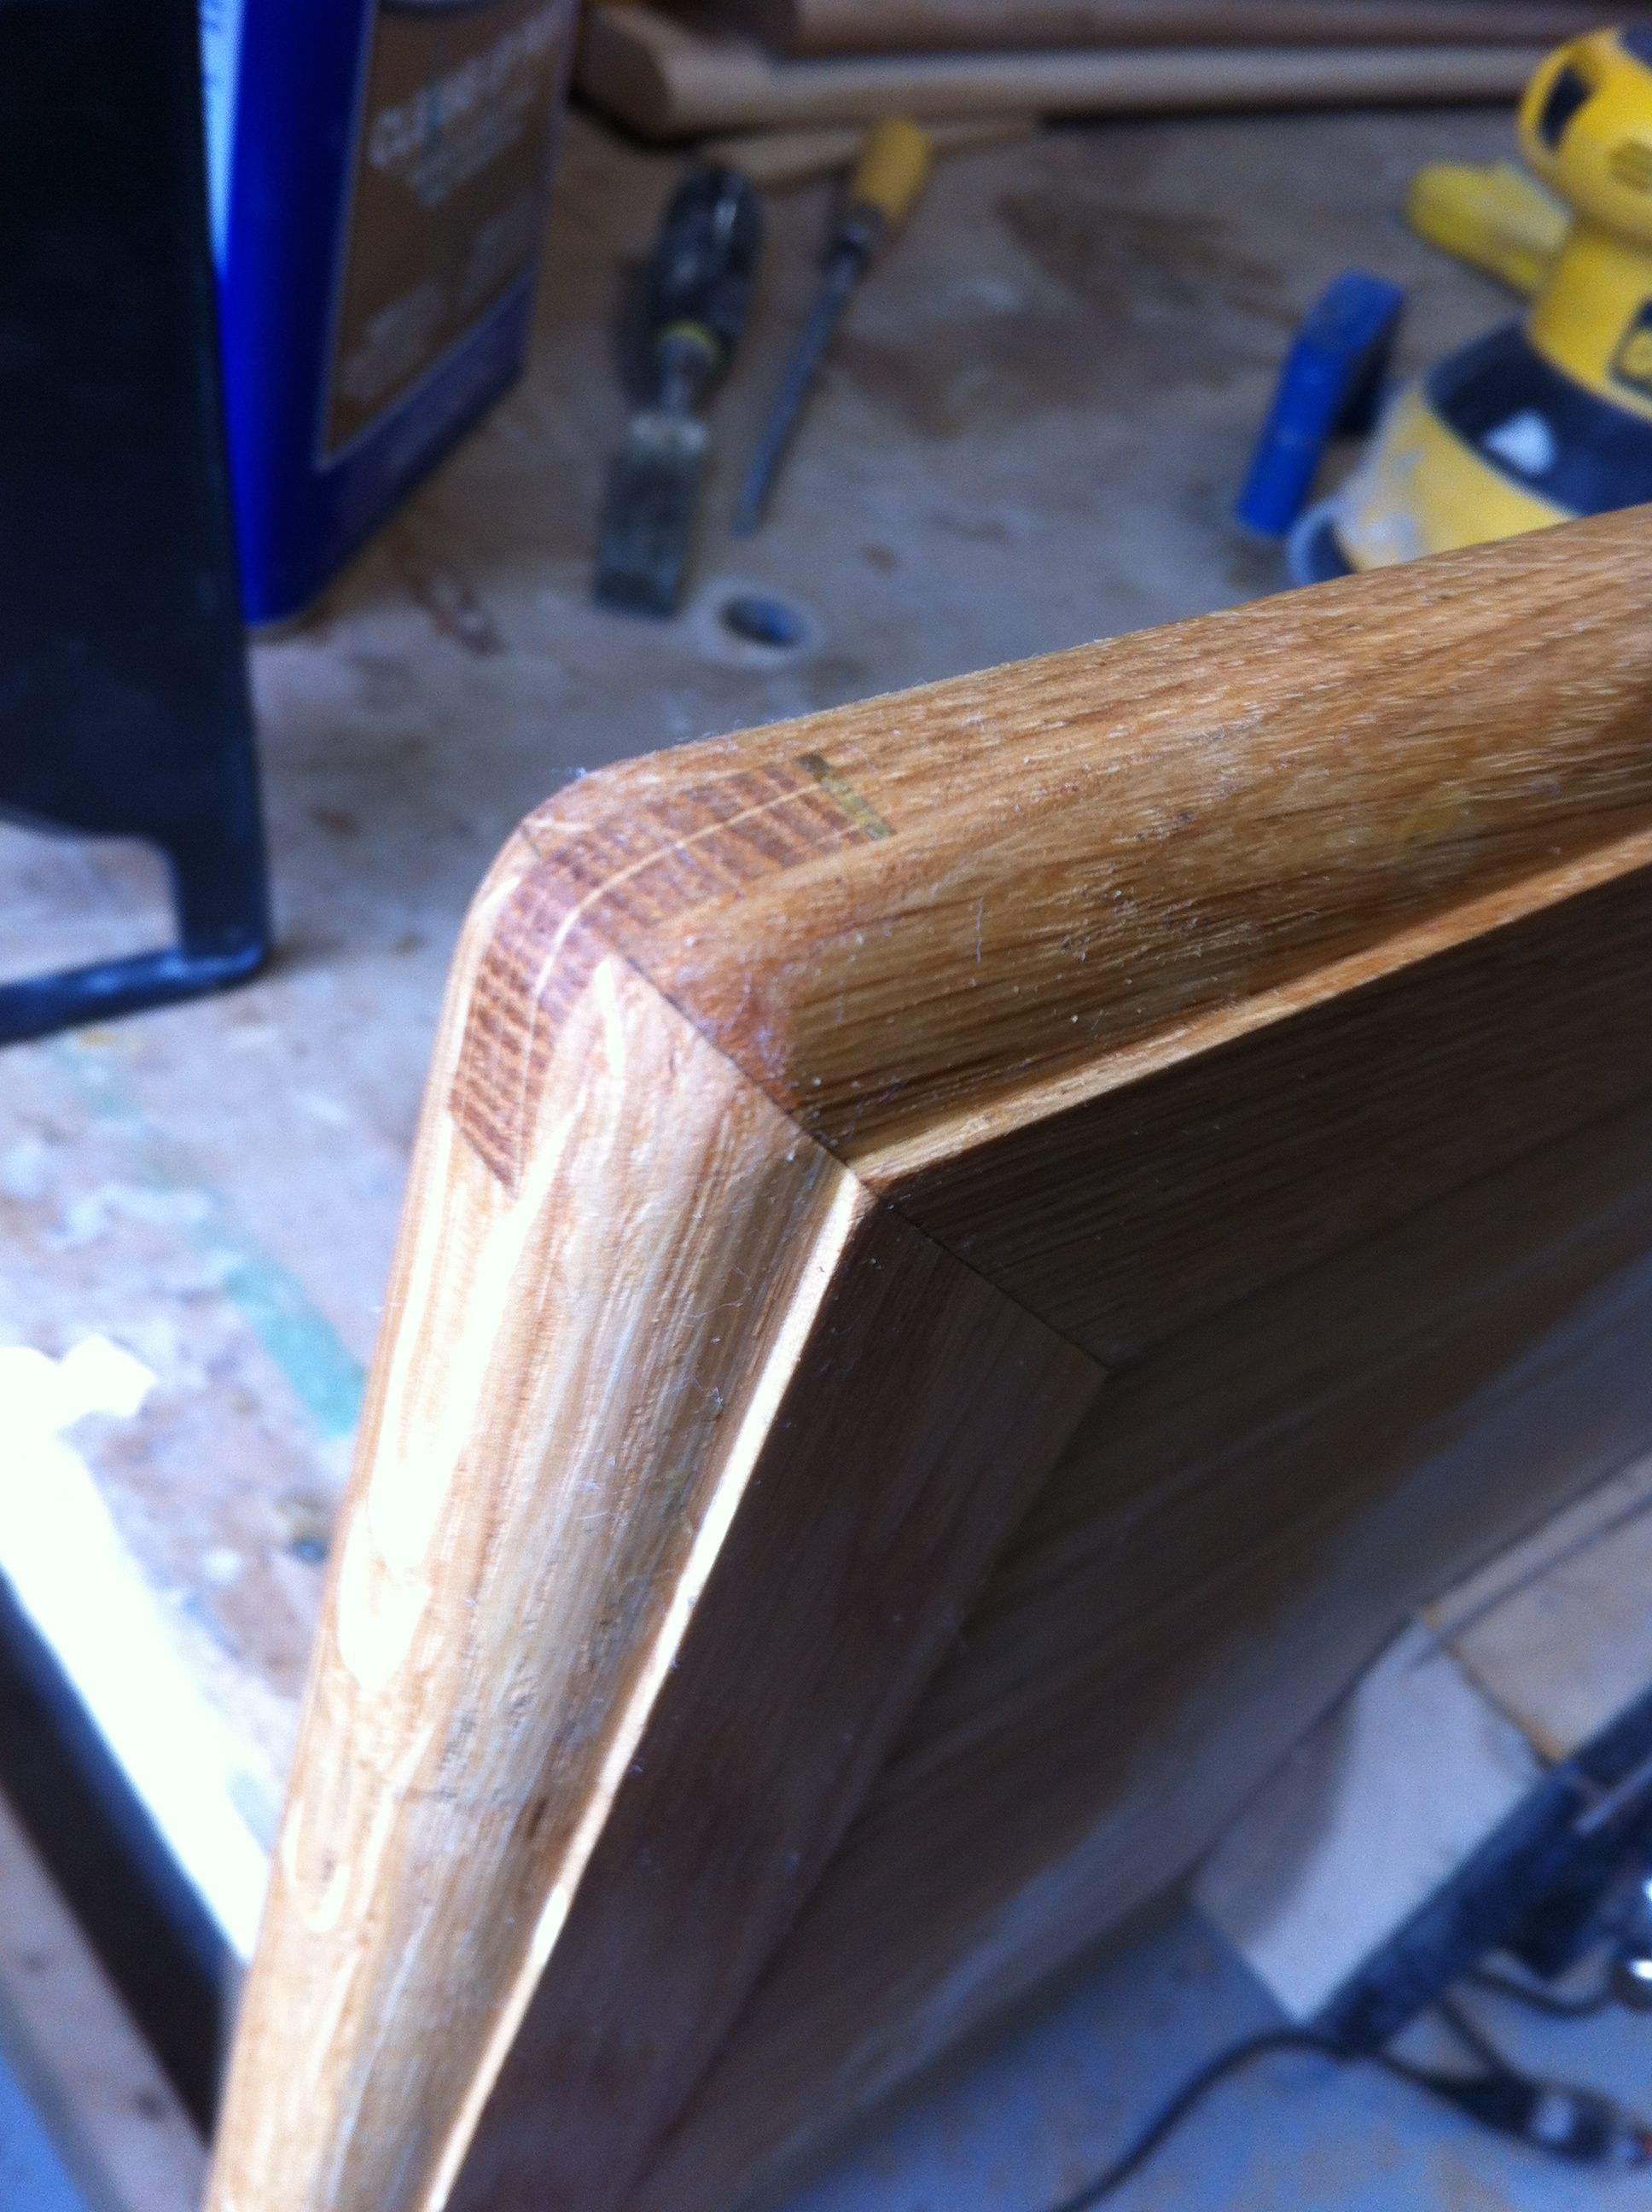 One Of The Steps In Detailing The Stair Treads Requires Burnishing The  Mitered And Splined Corners